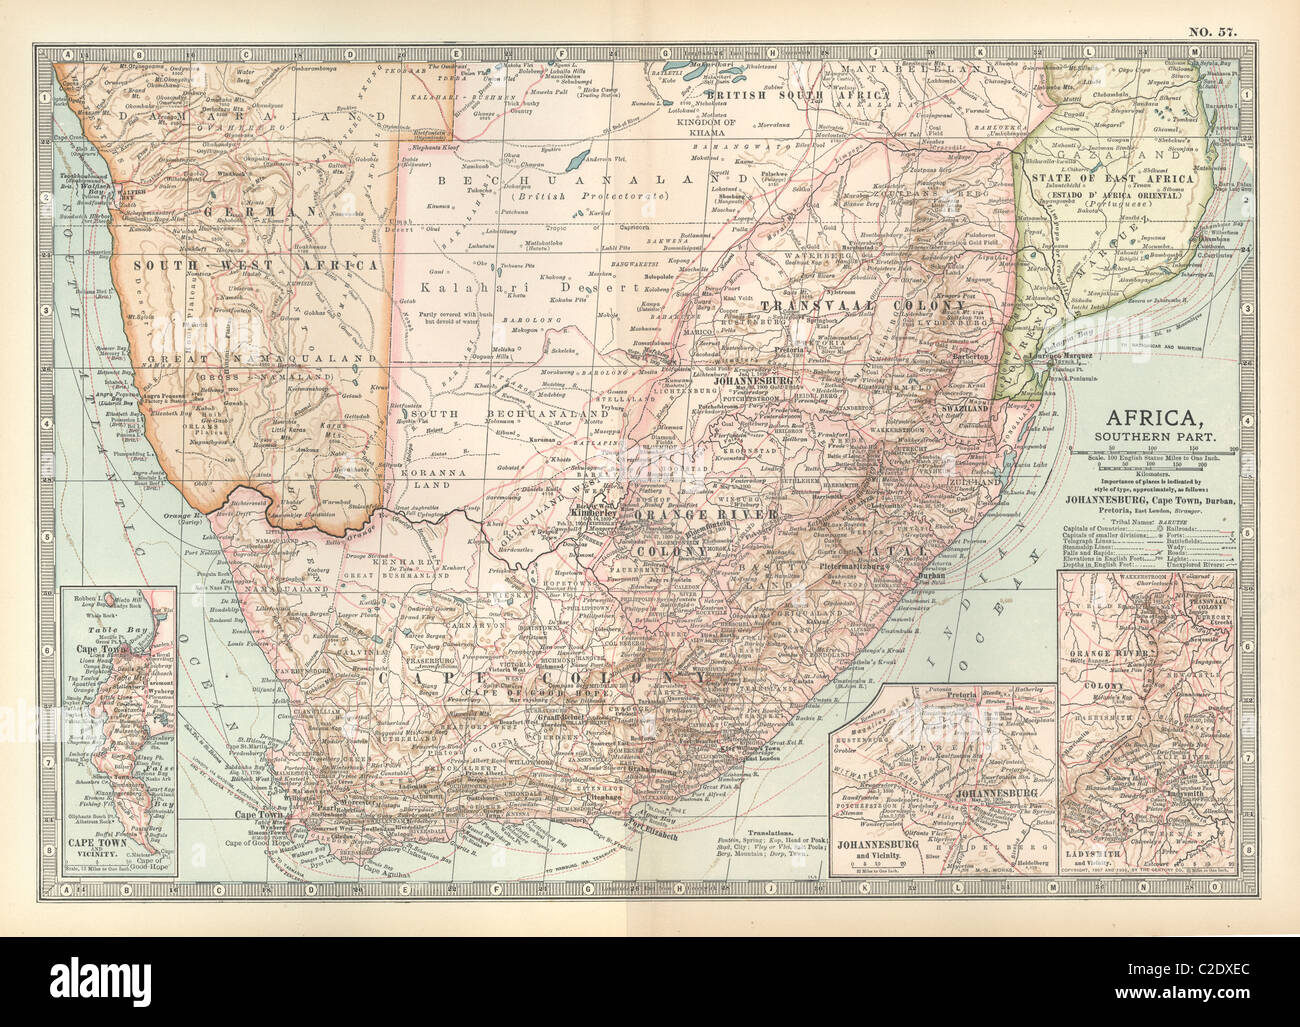 Map of Southern Africa - Stock Image